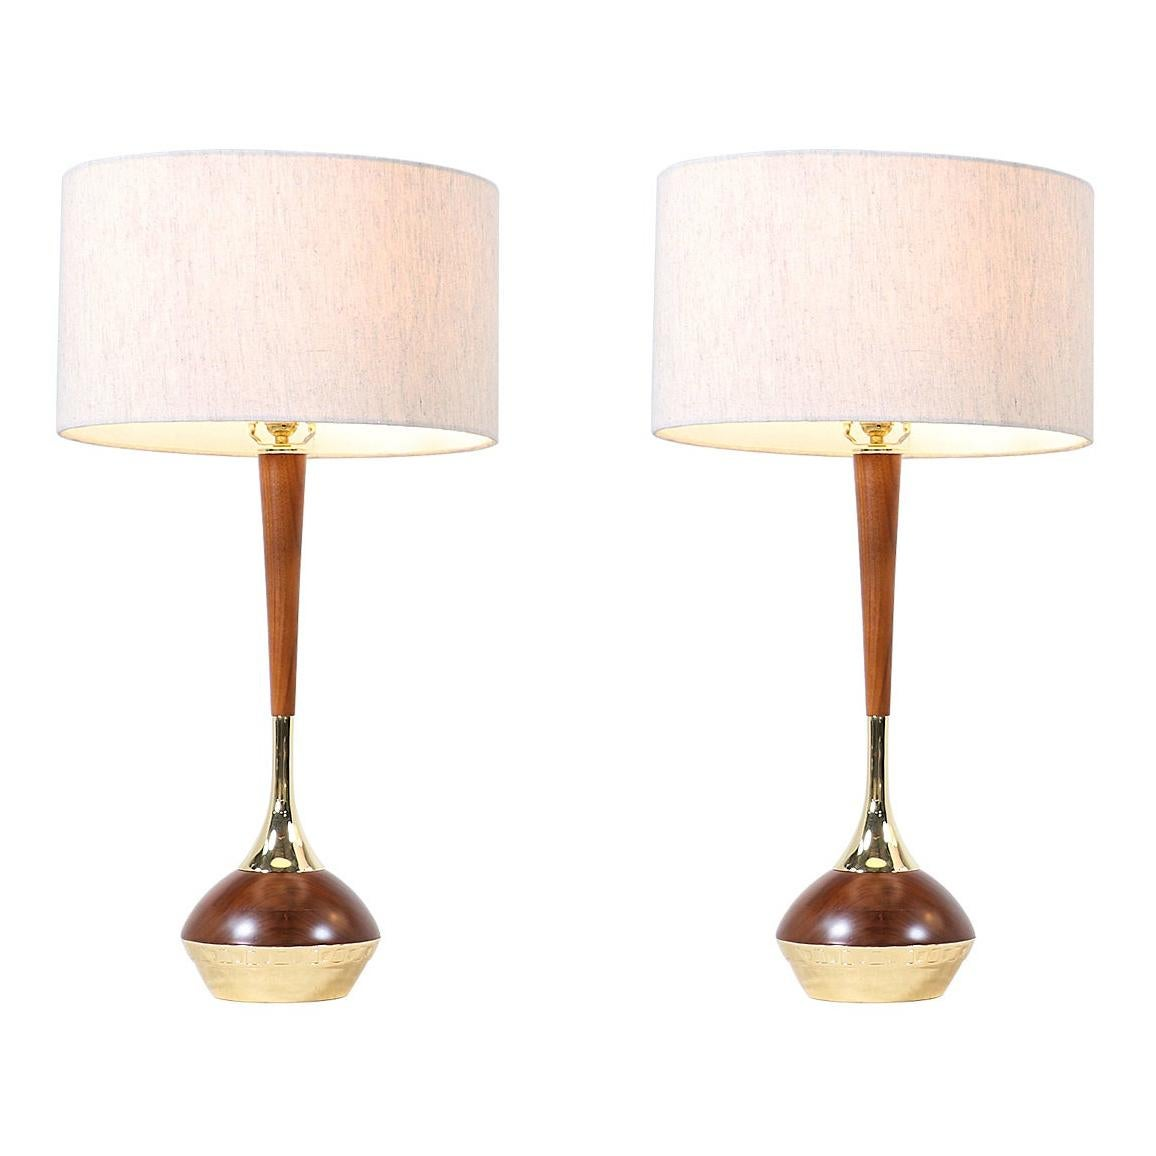 Mid-Century Modern Walnut & Brass Accent Table Lamps by Laurel